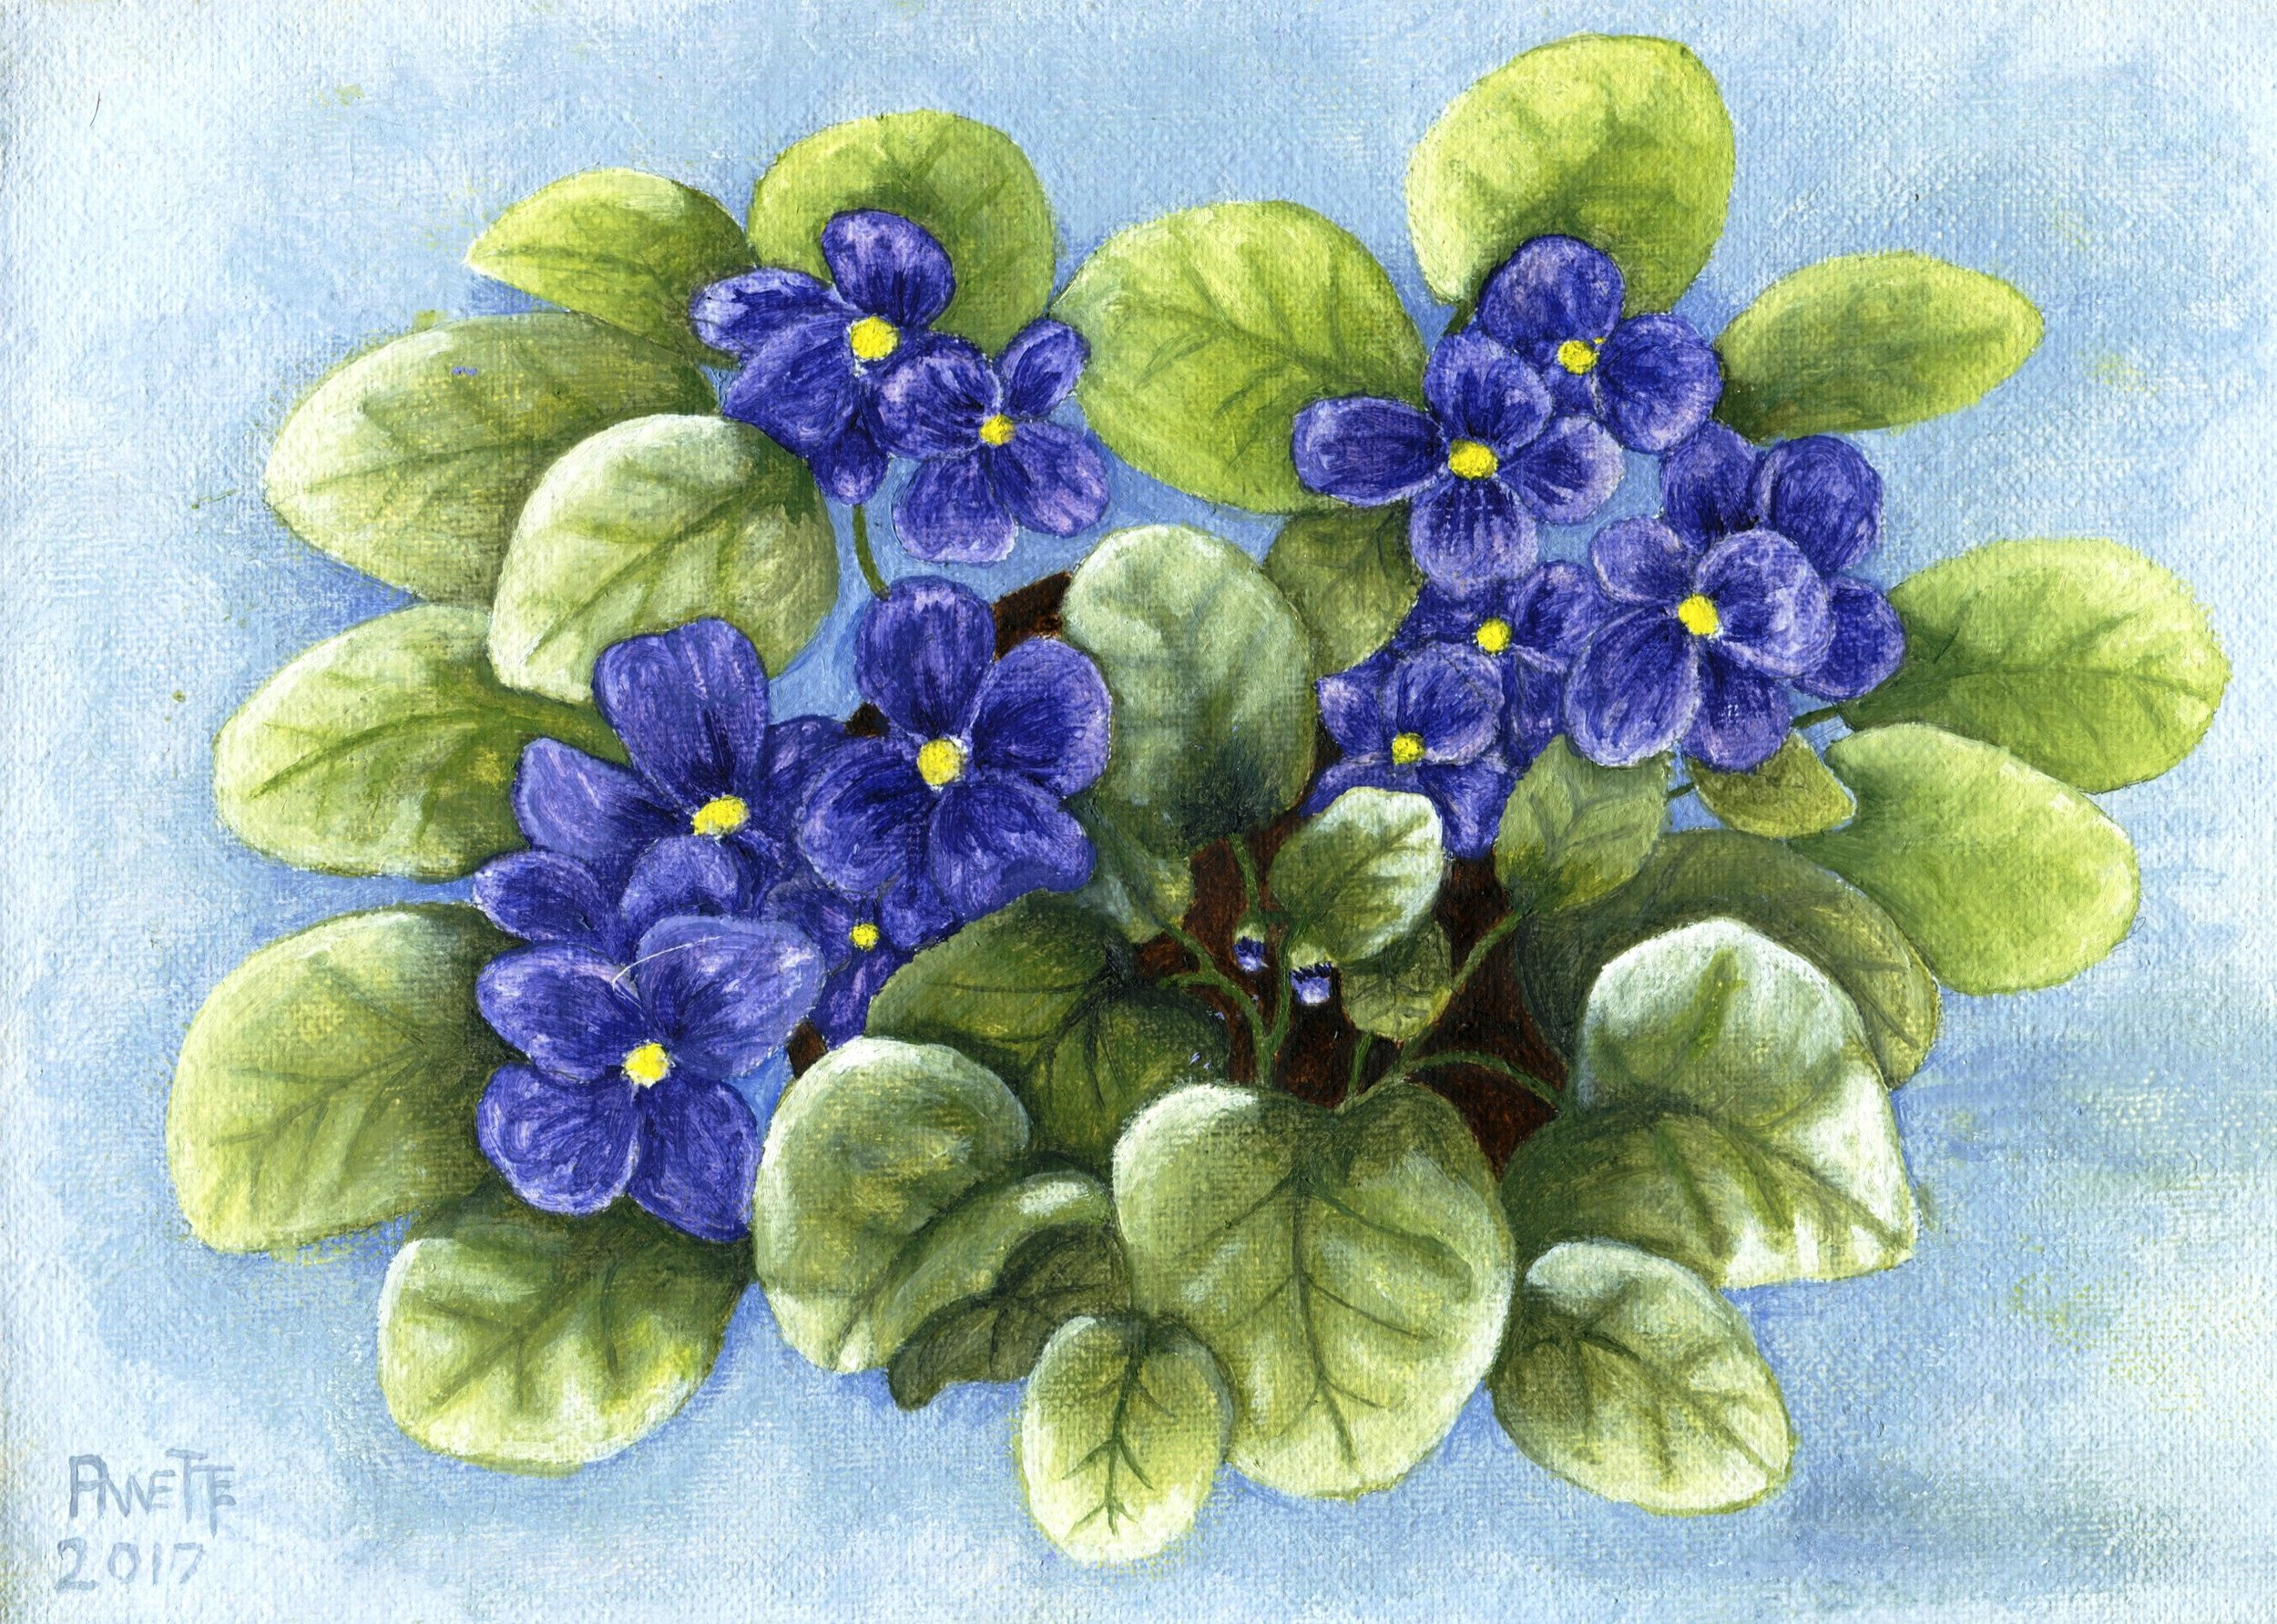 25B ANNETTE FARLAND,PURPLE AFRICAN VIOLET, OIL ON CANVAS